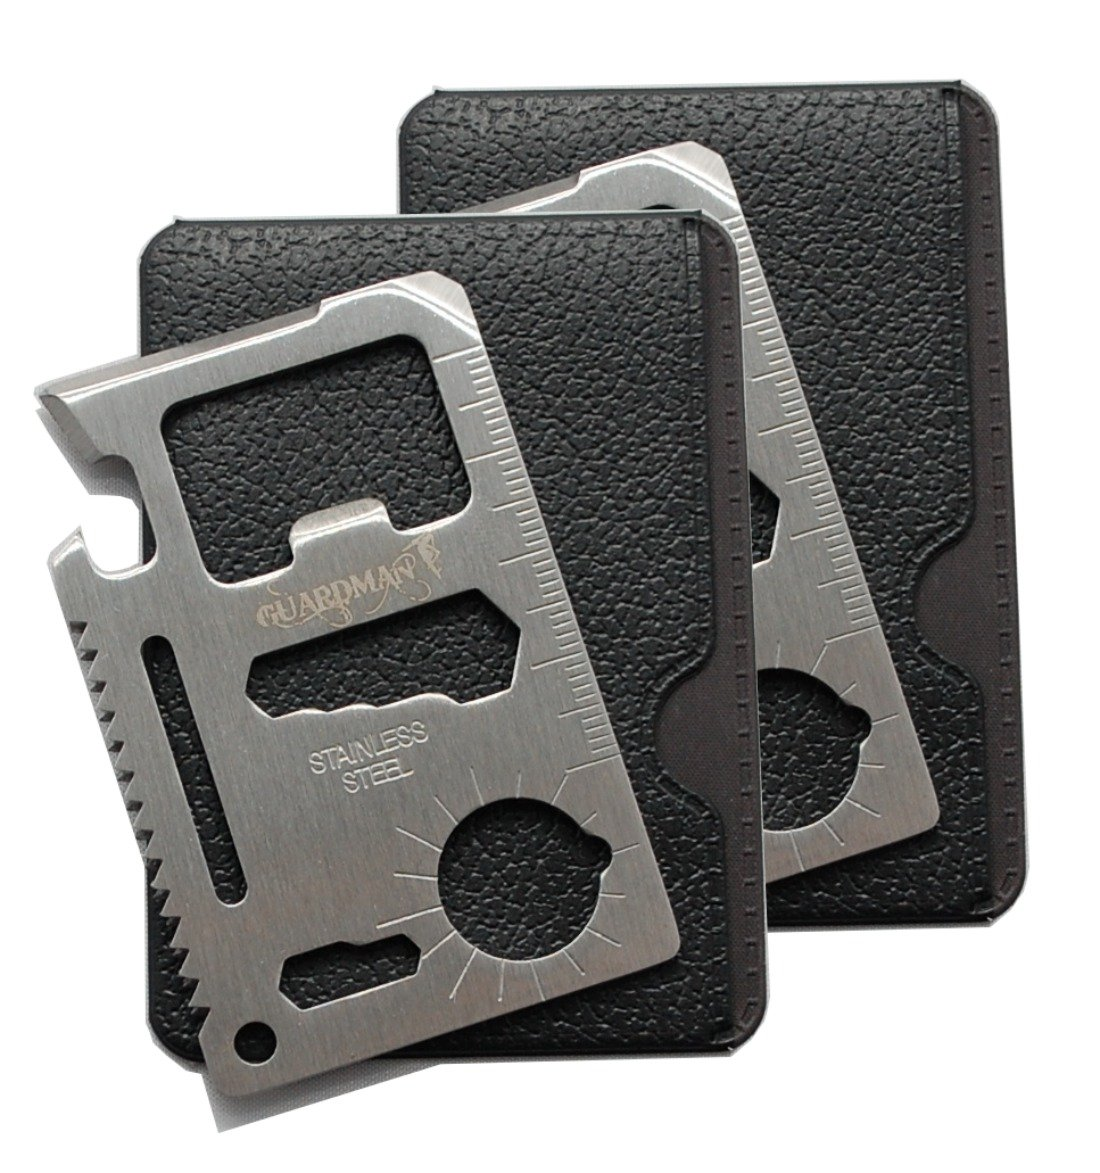 Guardman 2pcs 11 in 1 Multi Tool Credit Card Survival Tool Fits Perfect in Your Wallet 2 Pack Christmas Gifts for Men Stocking Stuffers for Men